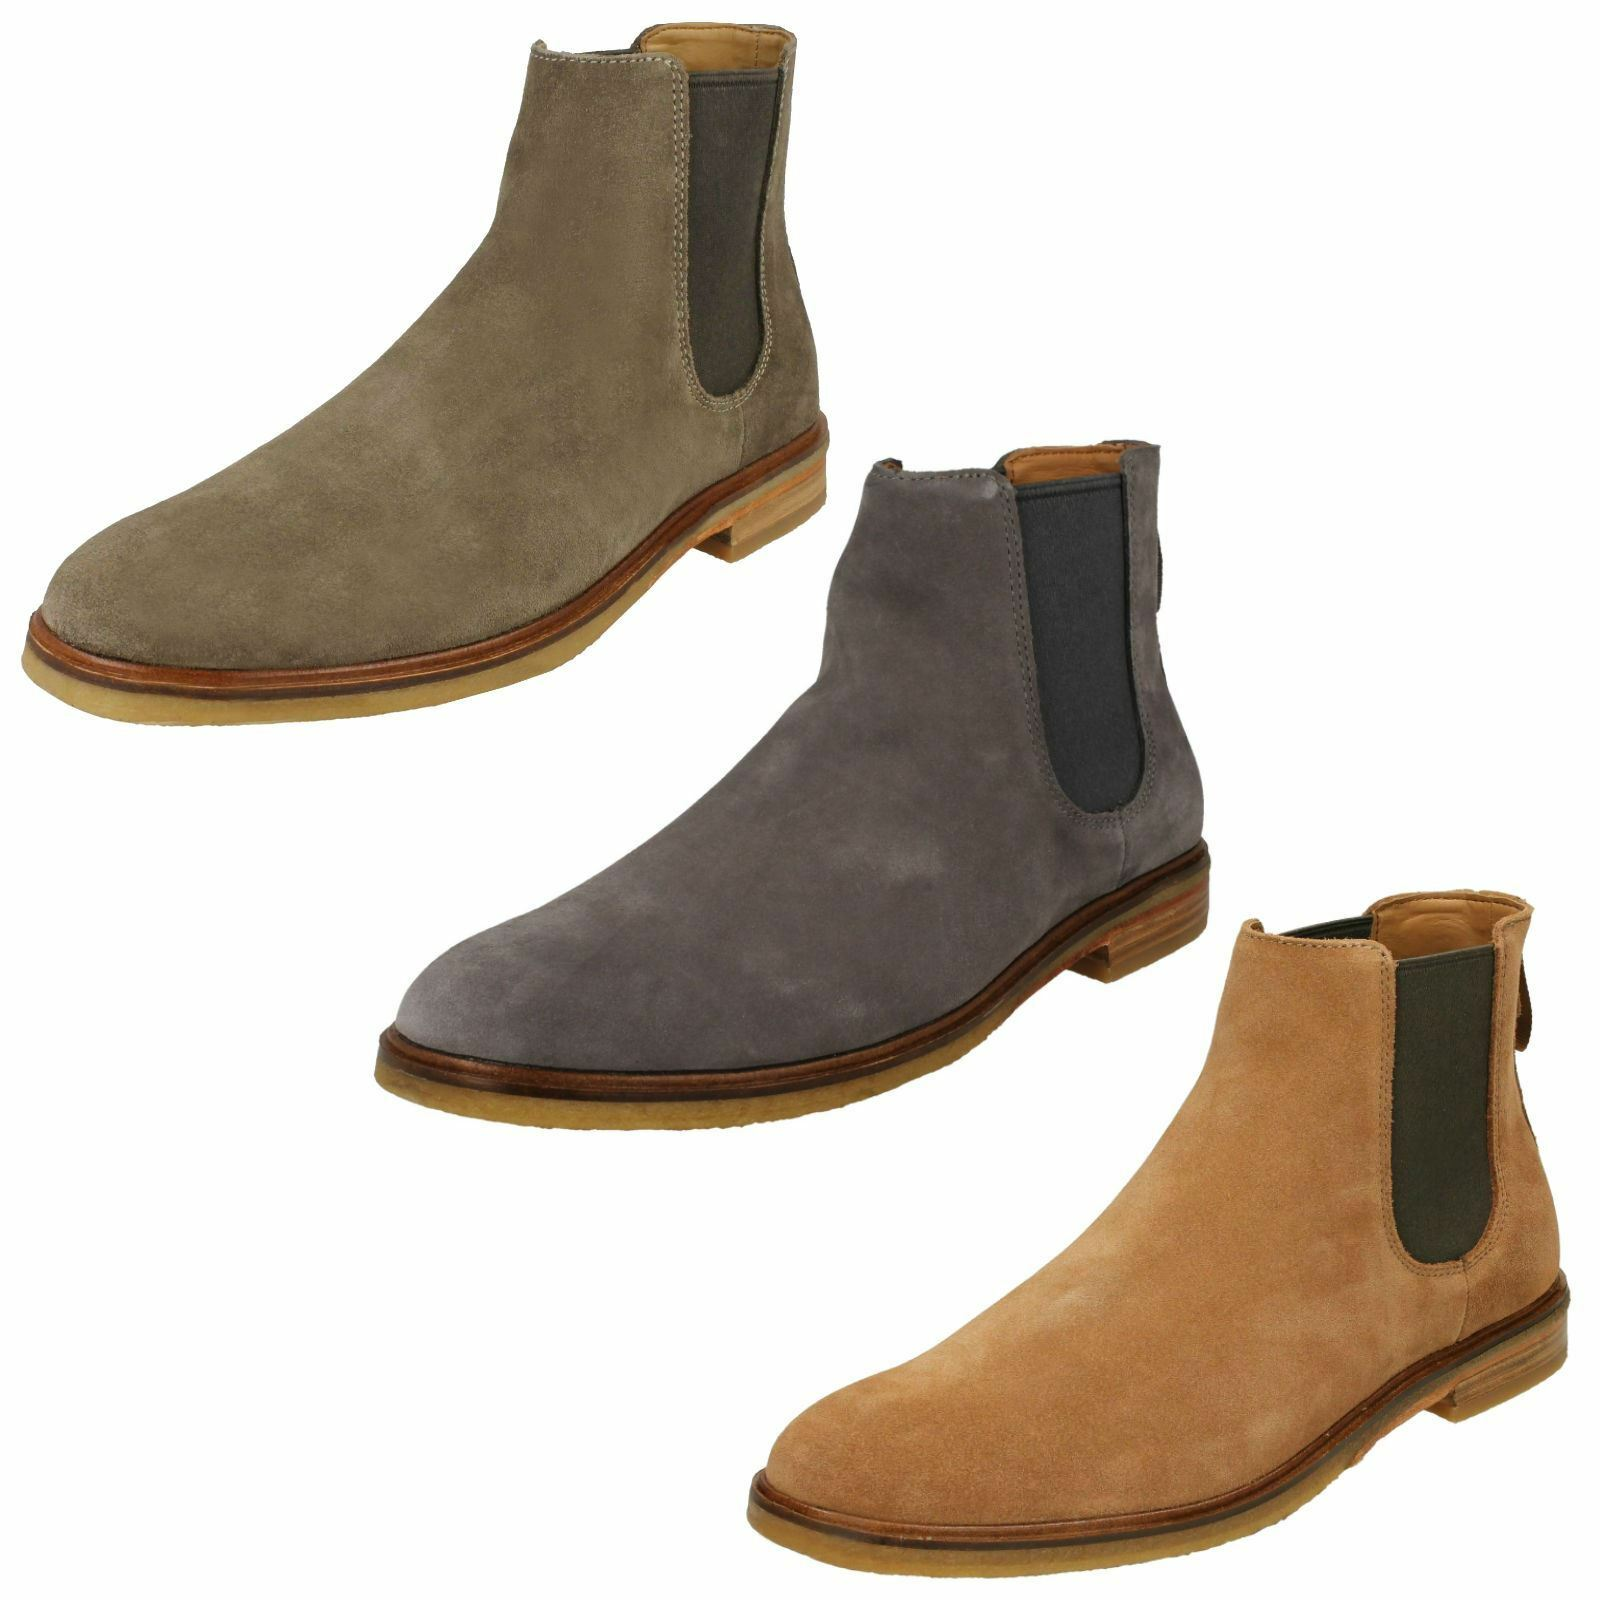 3cc38aba6fd991 Mens Clarks Clarkdale Gobi Chelsea Boots nwccwp6412-Boots - camping ...